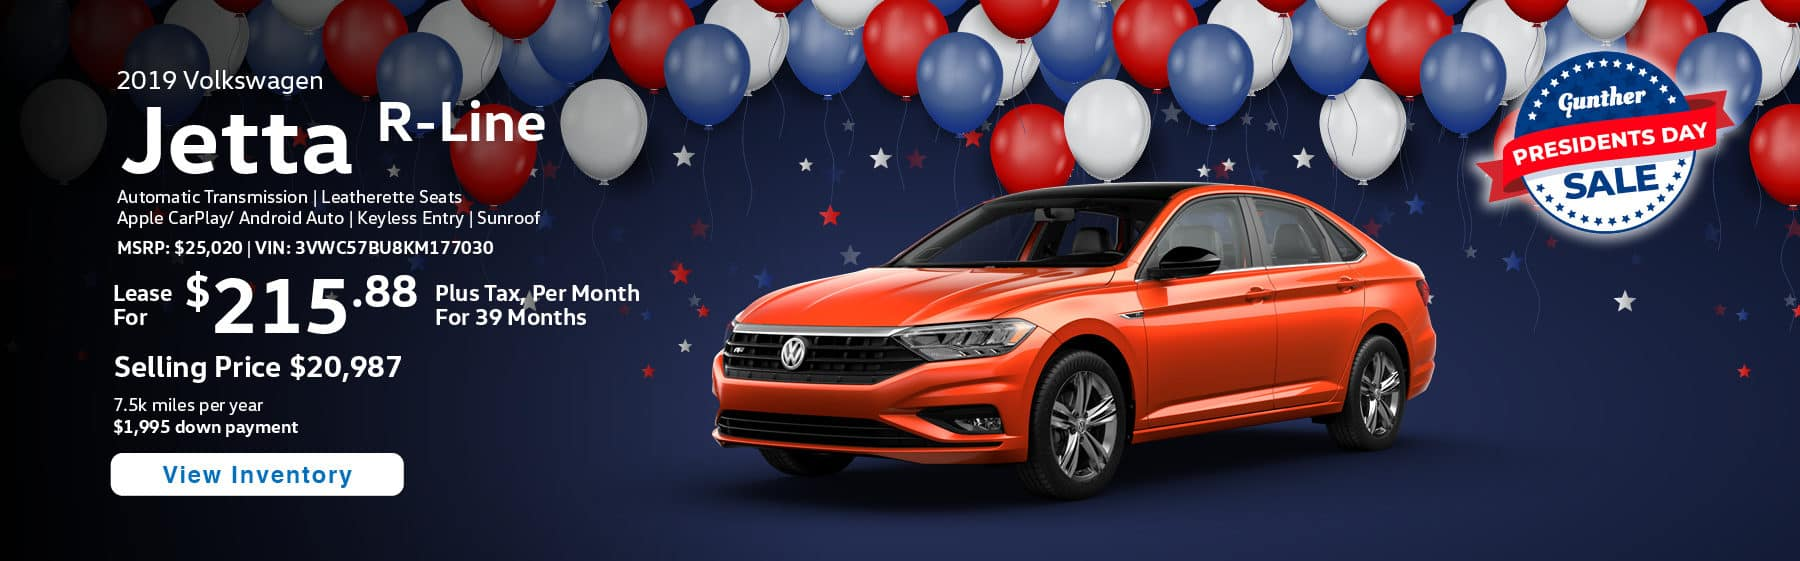 Lease the 2019 Jetta R-Line for $215.88 per month, plus tax for 39 months.